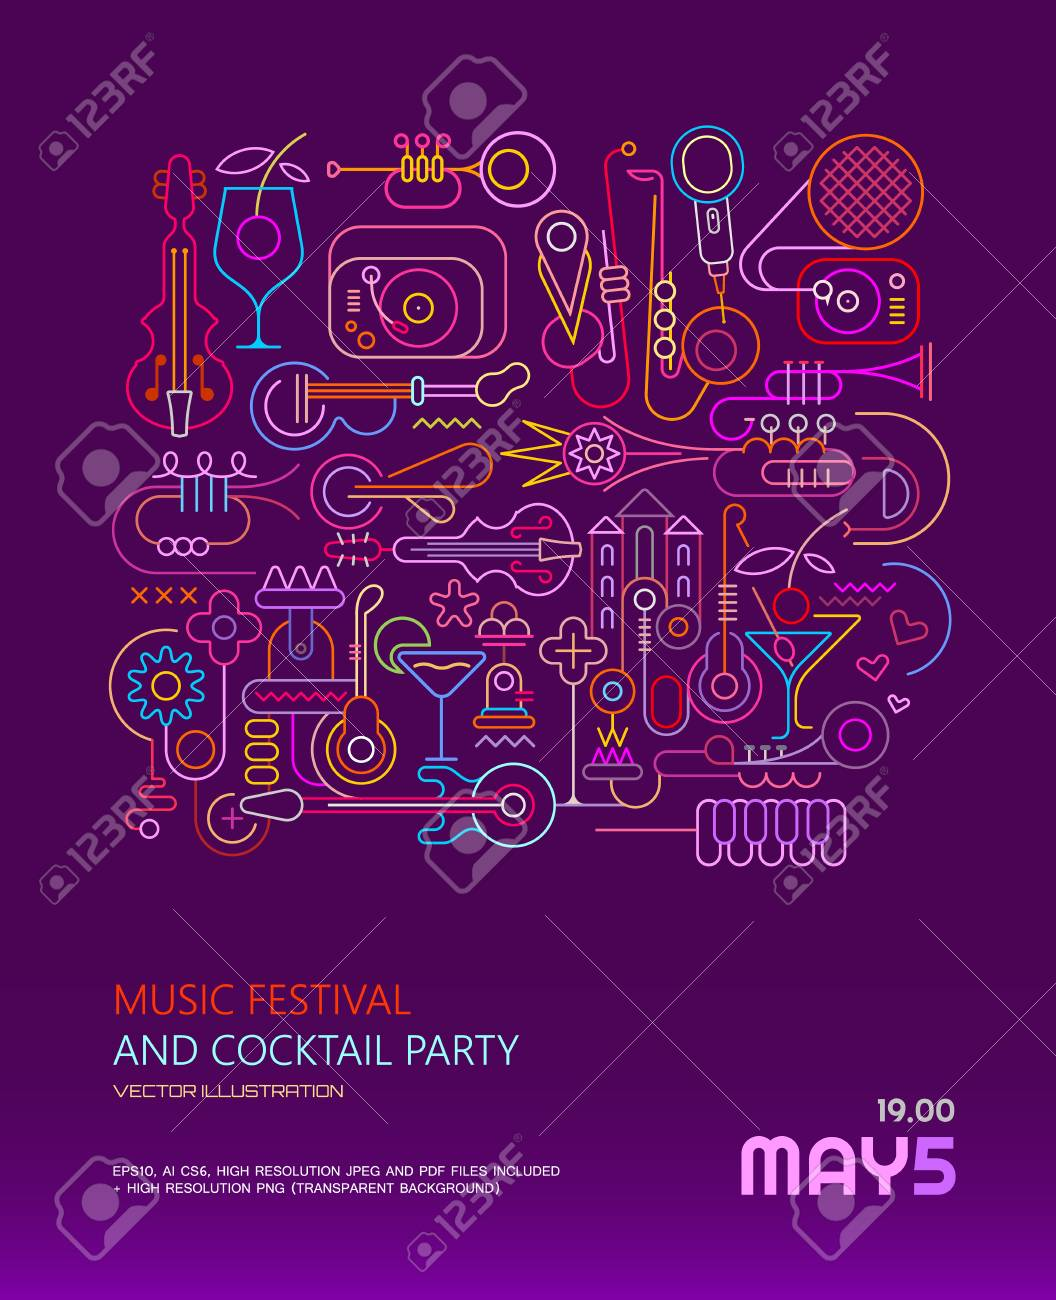 Music Festival And Cocktail Party Vector Poster Template Design Stock